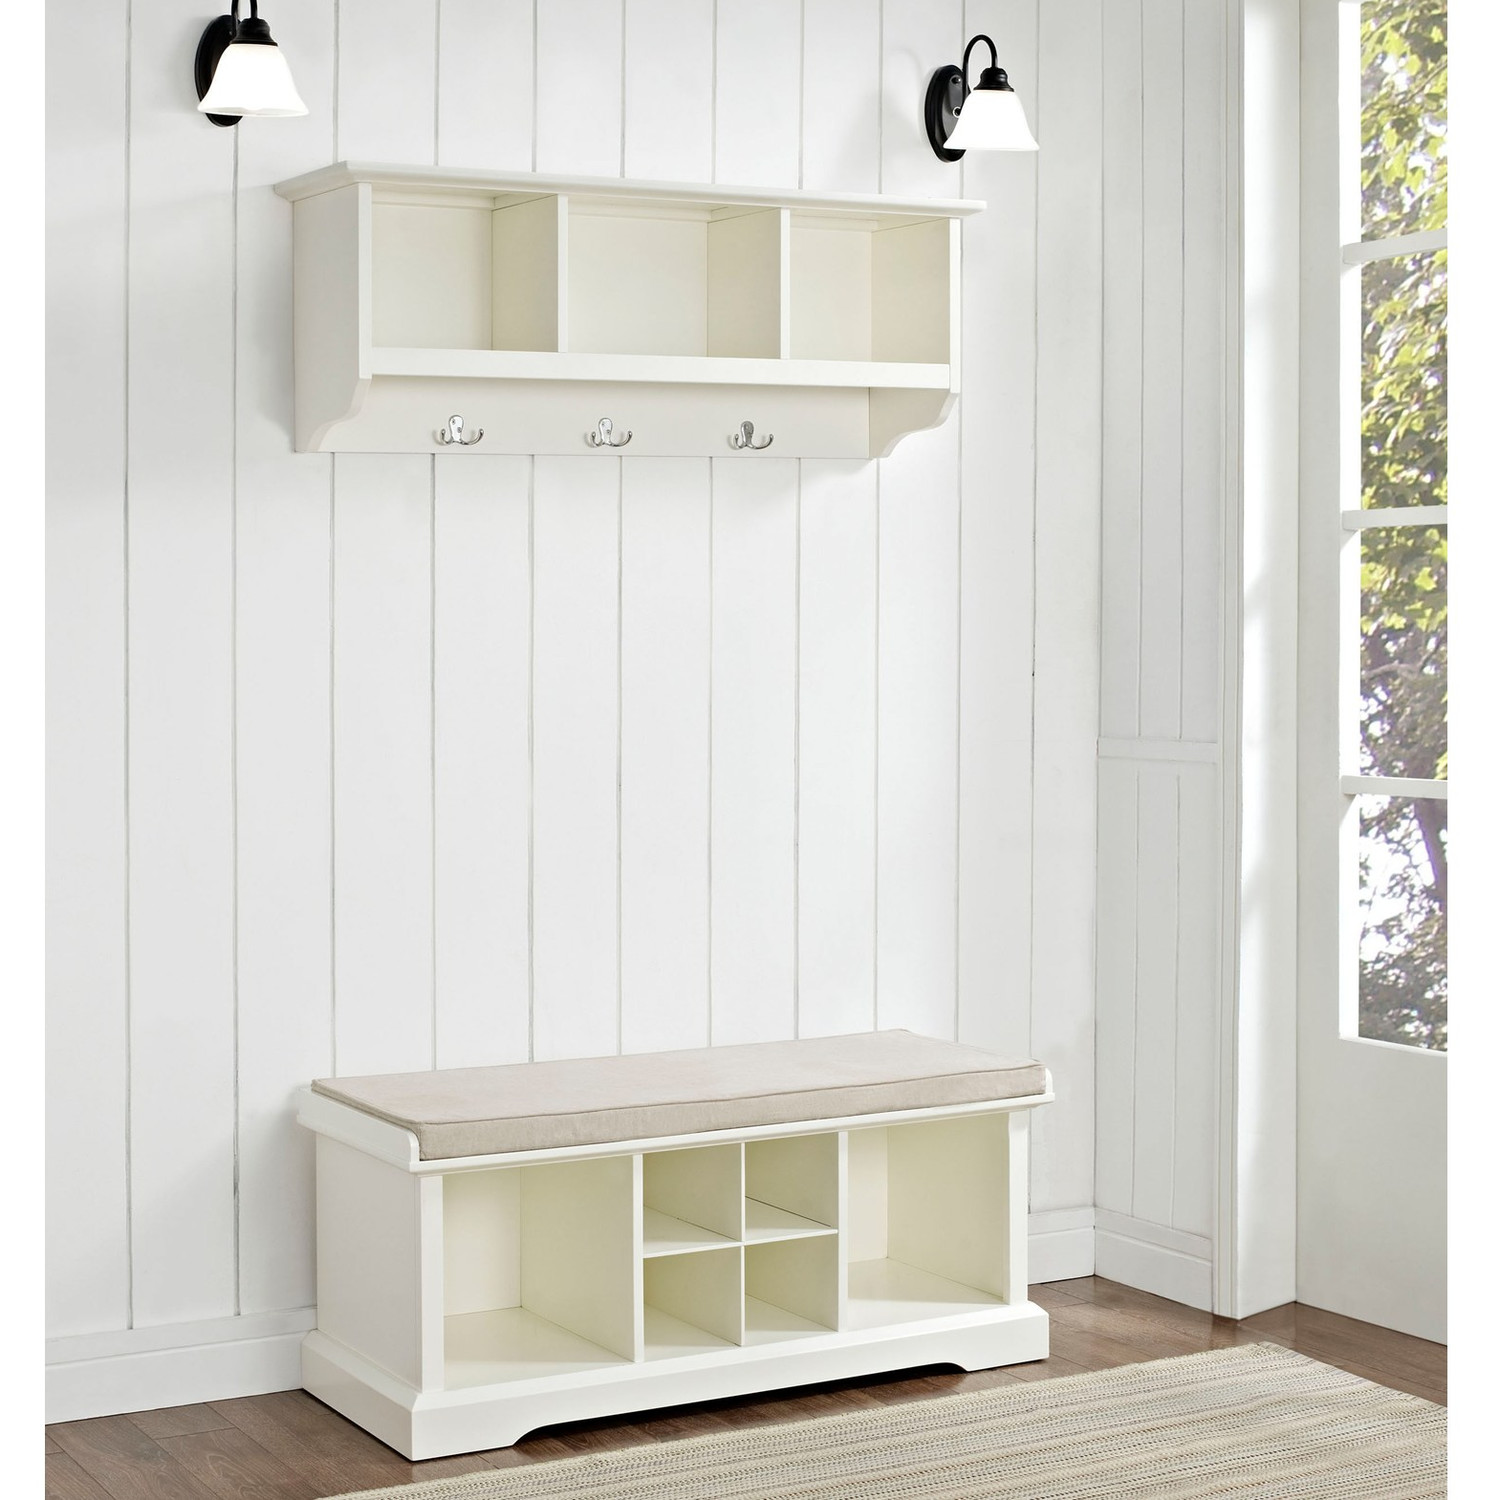 white-hall-tree-storage-bench-with-shelves-and-hooks-for-home-furniture-ideas-entryway-bench-ikea-coat-hanger-bench-mudroom-hall-tree-bedford-hall-tree-and-storage-bench-hall-coat-rack-bench-hall-coat